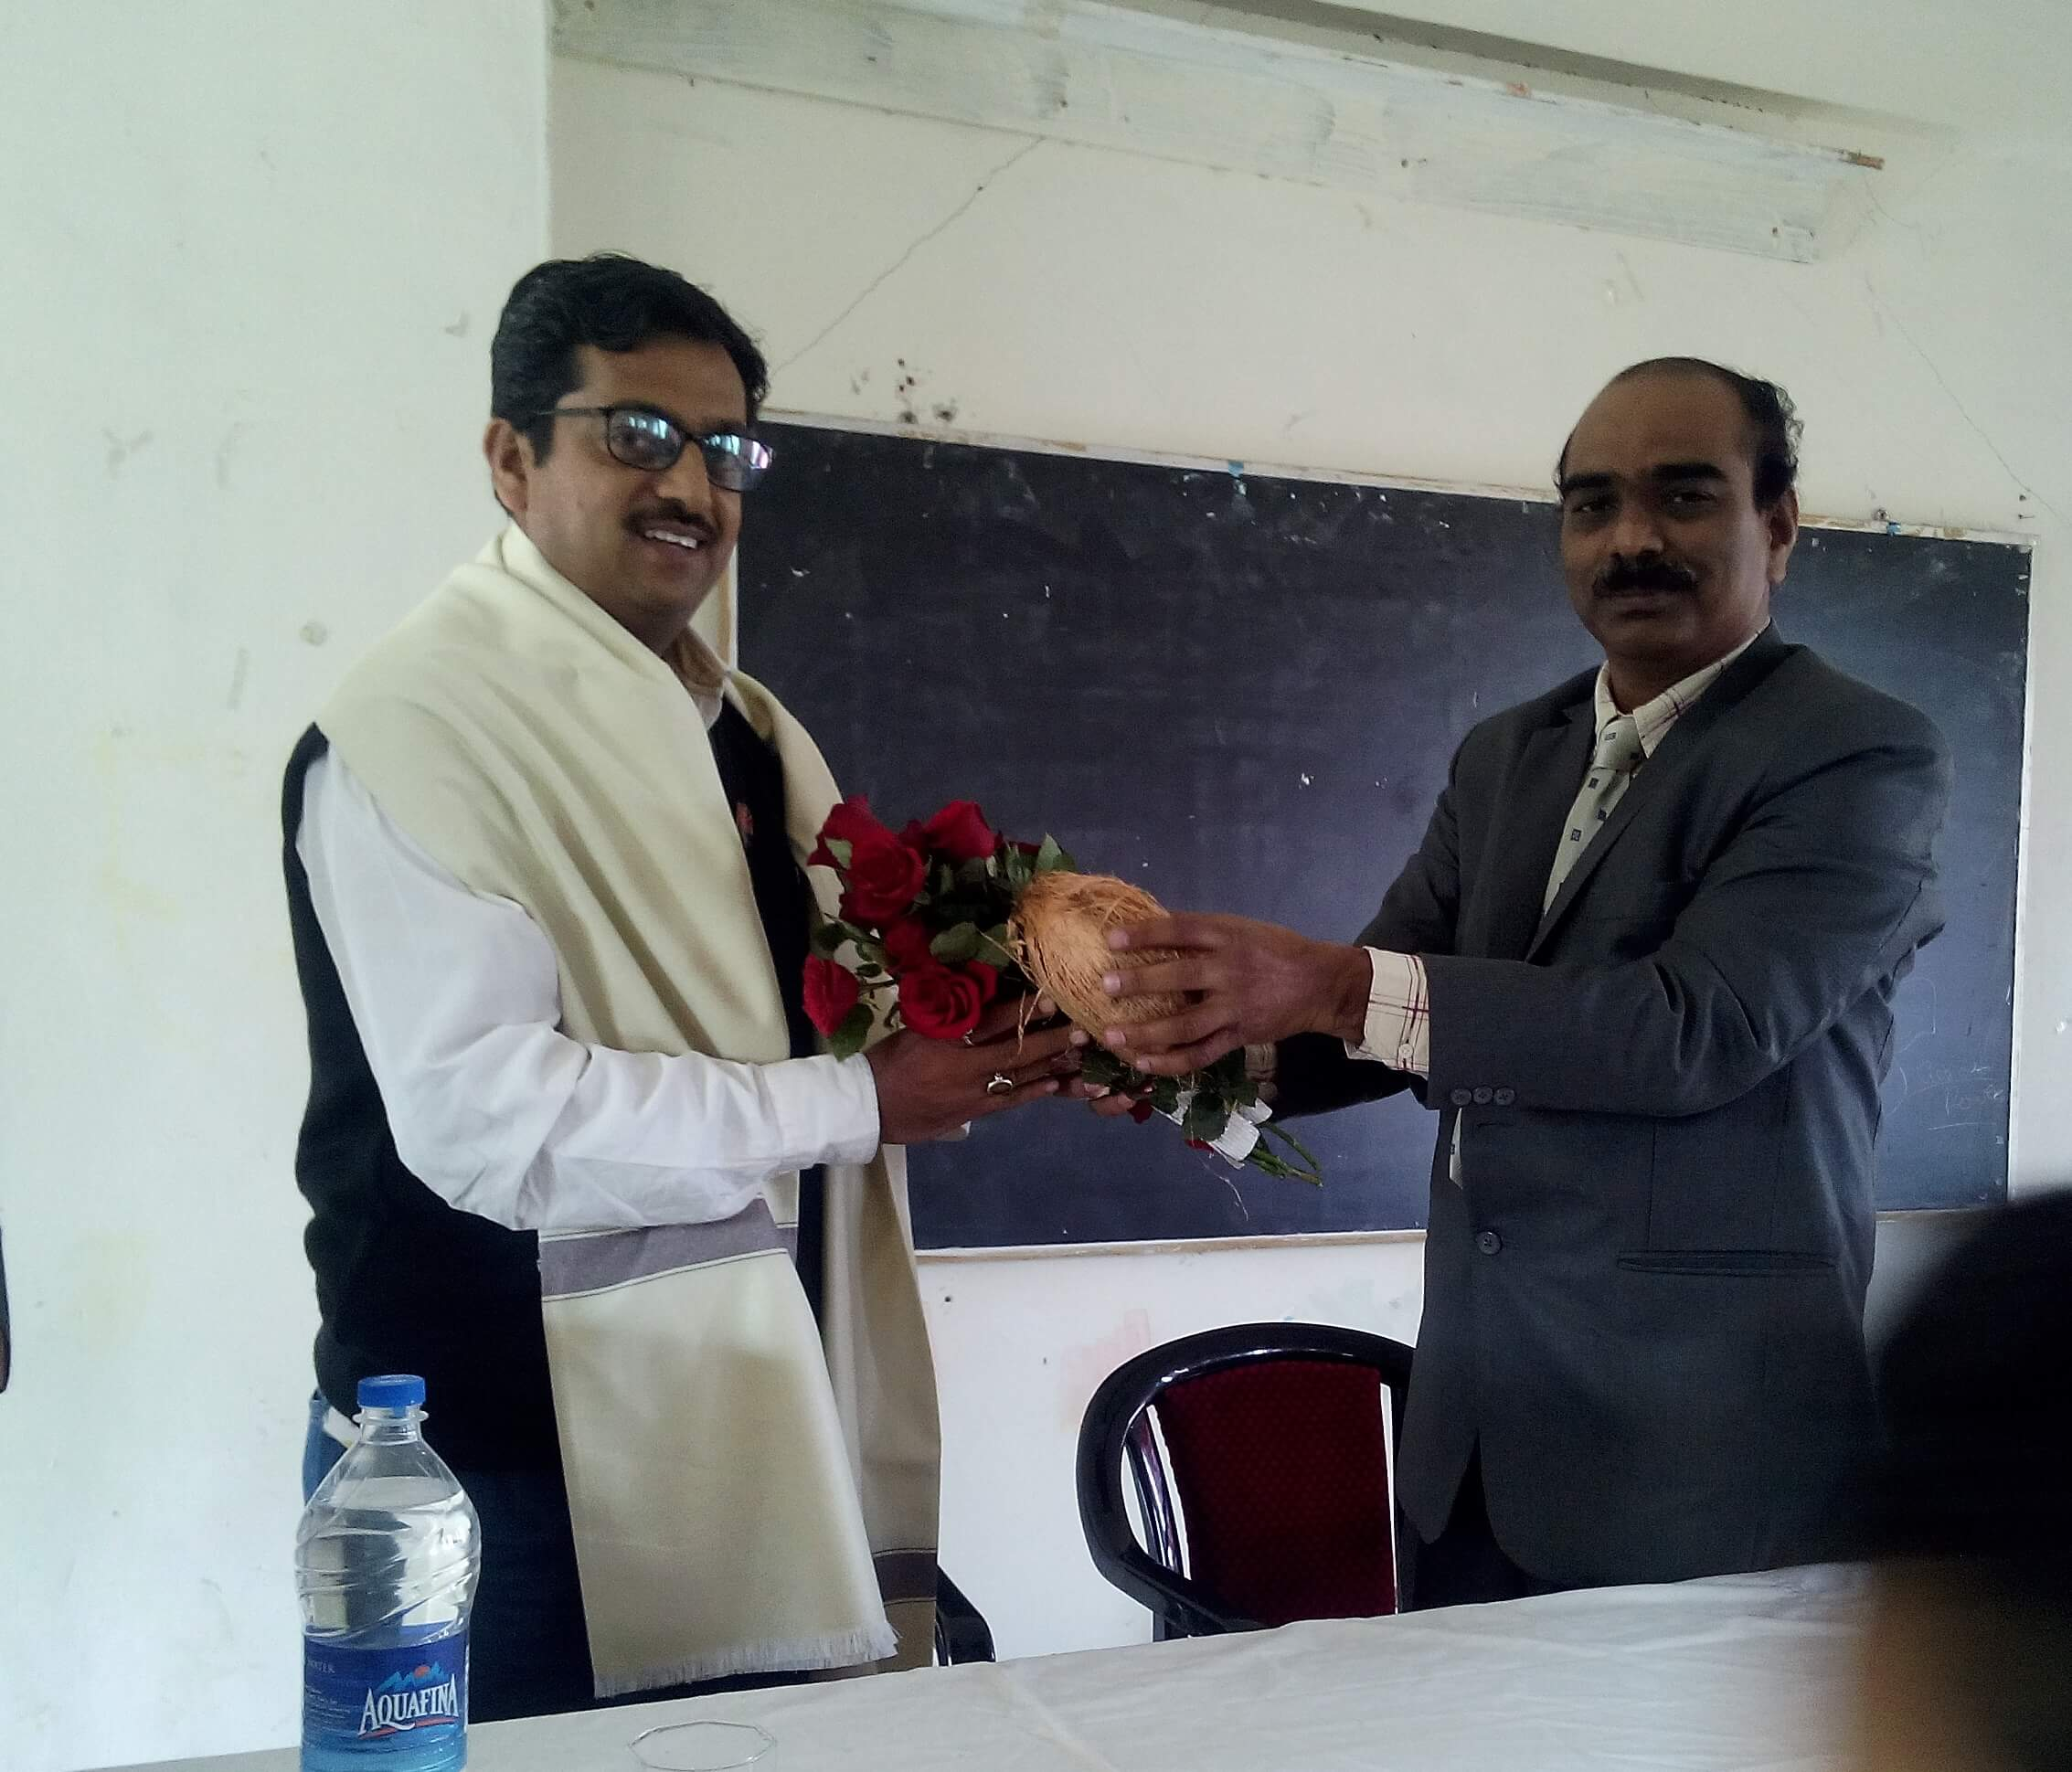 Felicitation of Dr. Munir Sayyad